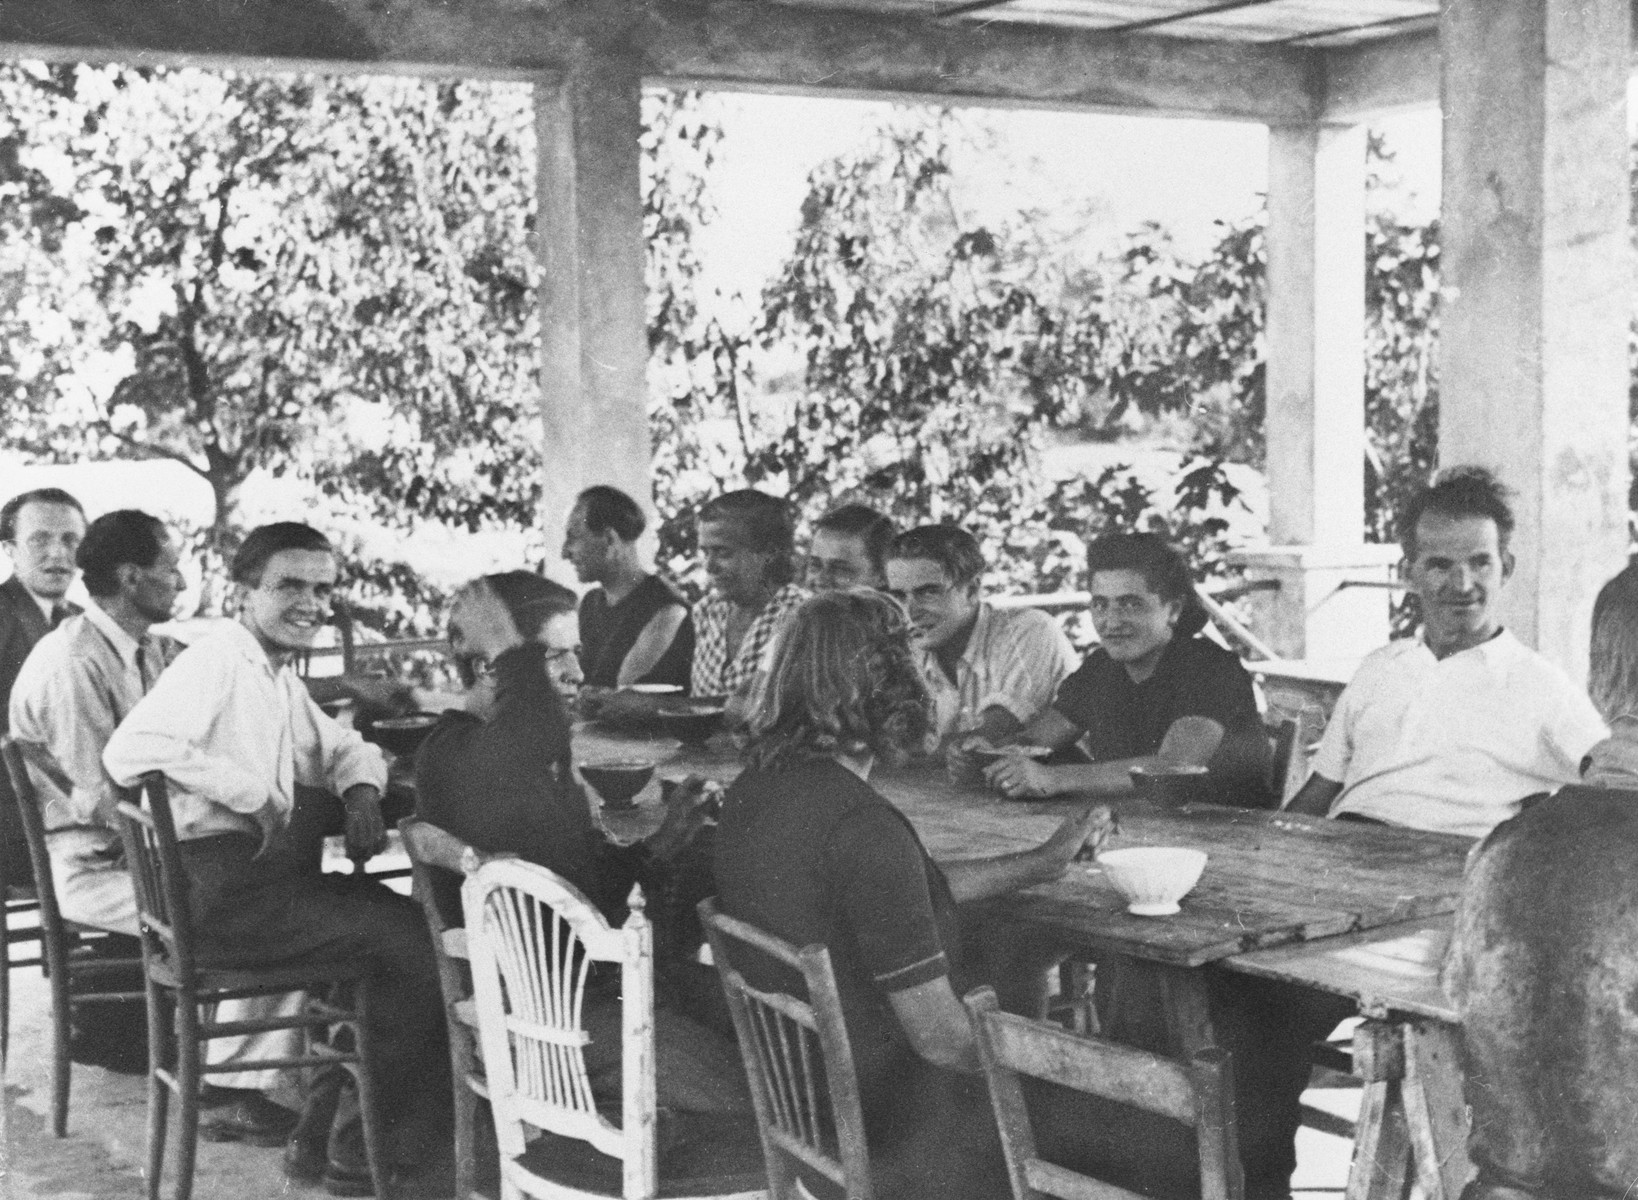 Jewish and Czech workers in the Vence children's home.  Those pictured include Goldstein, Wetzler, Suchy and Vanek.